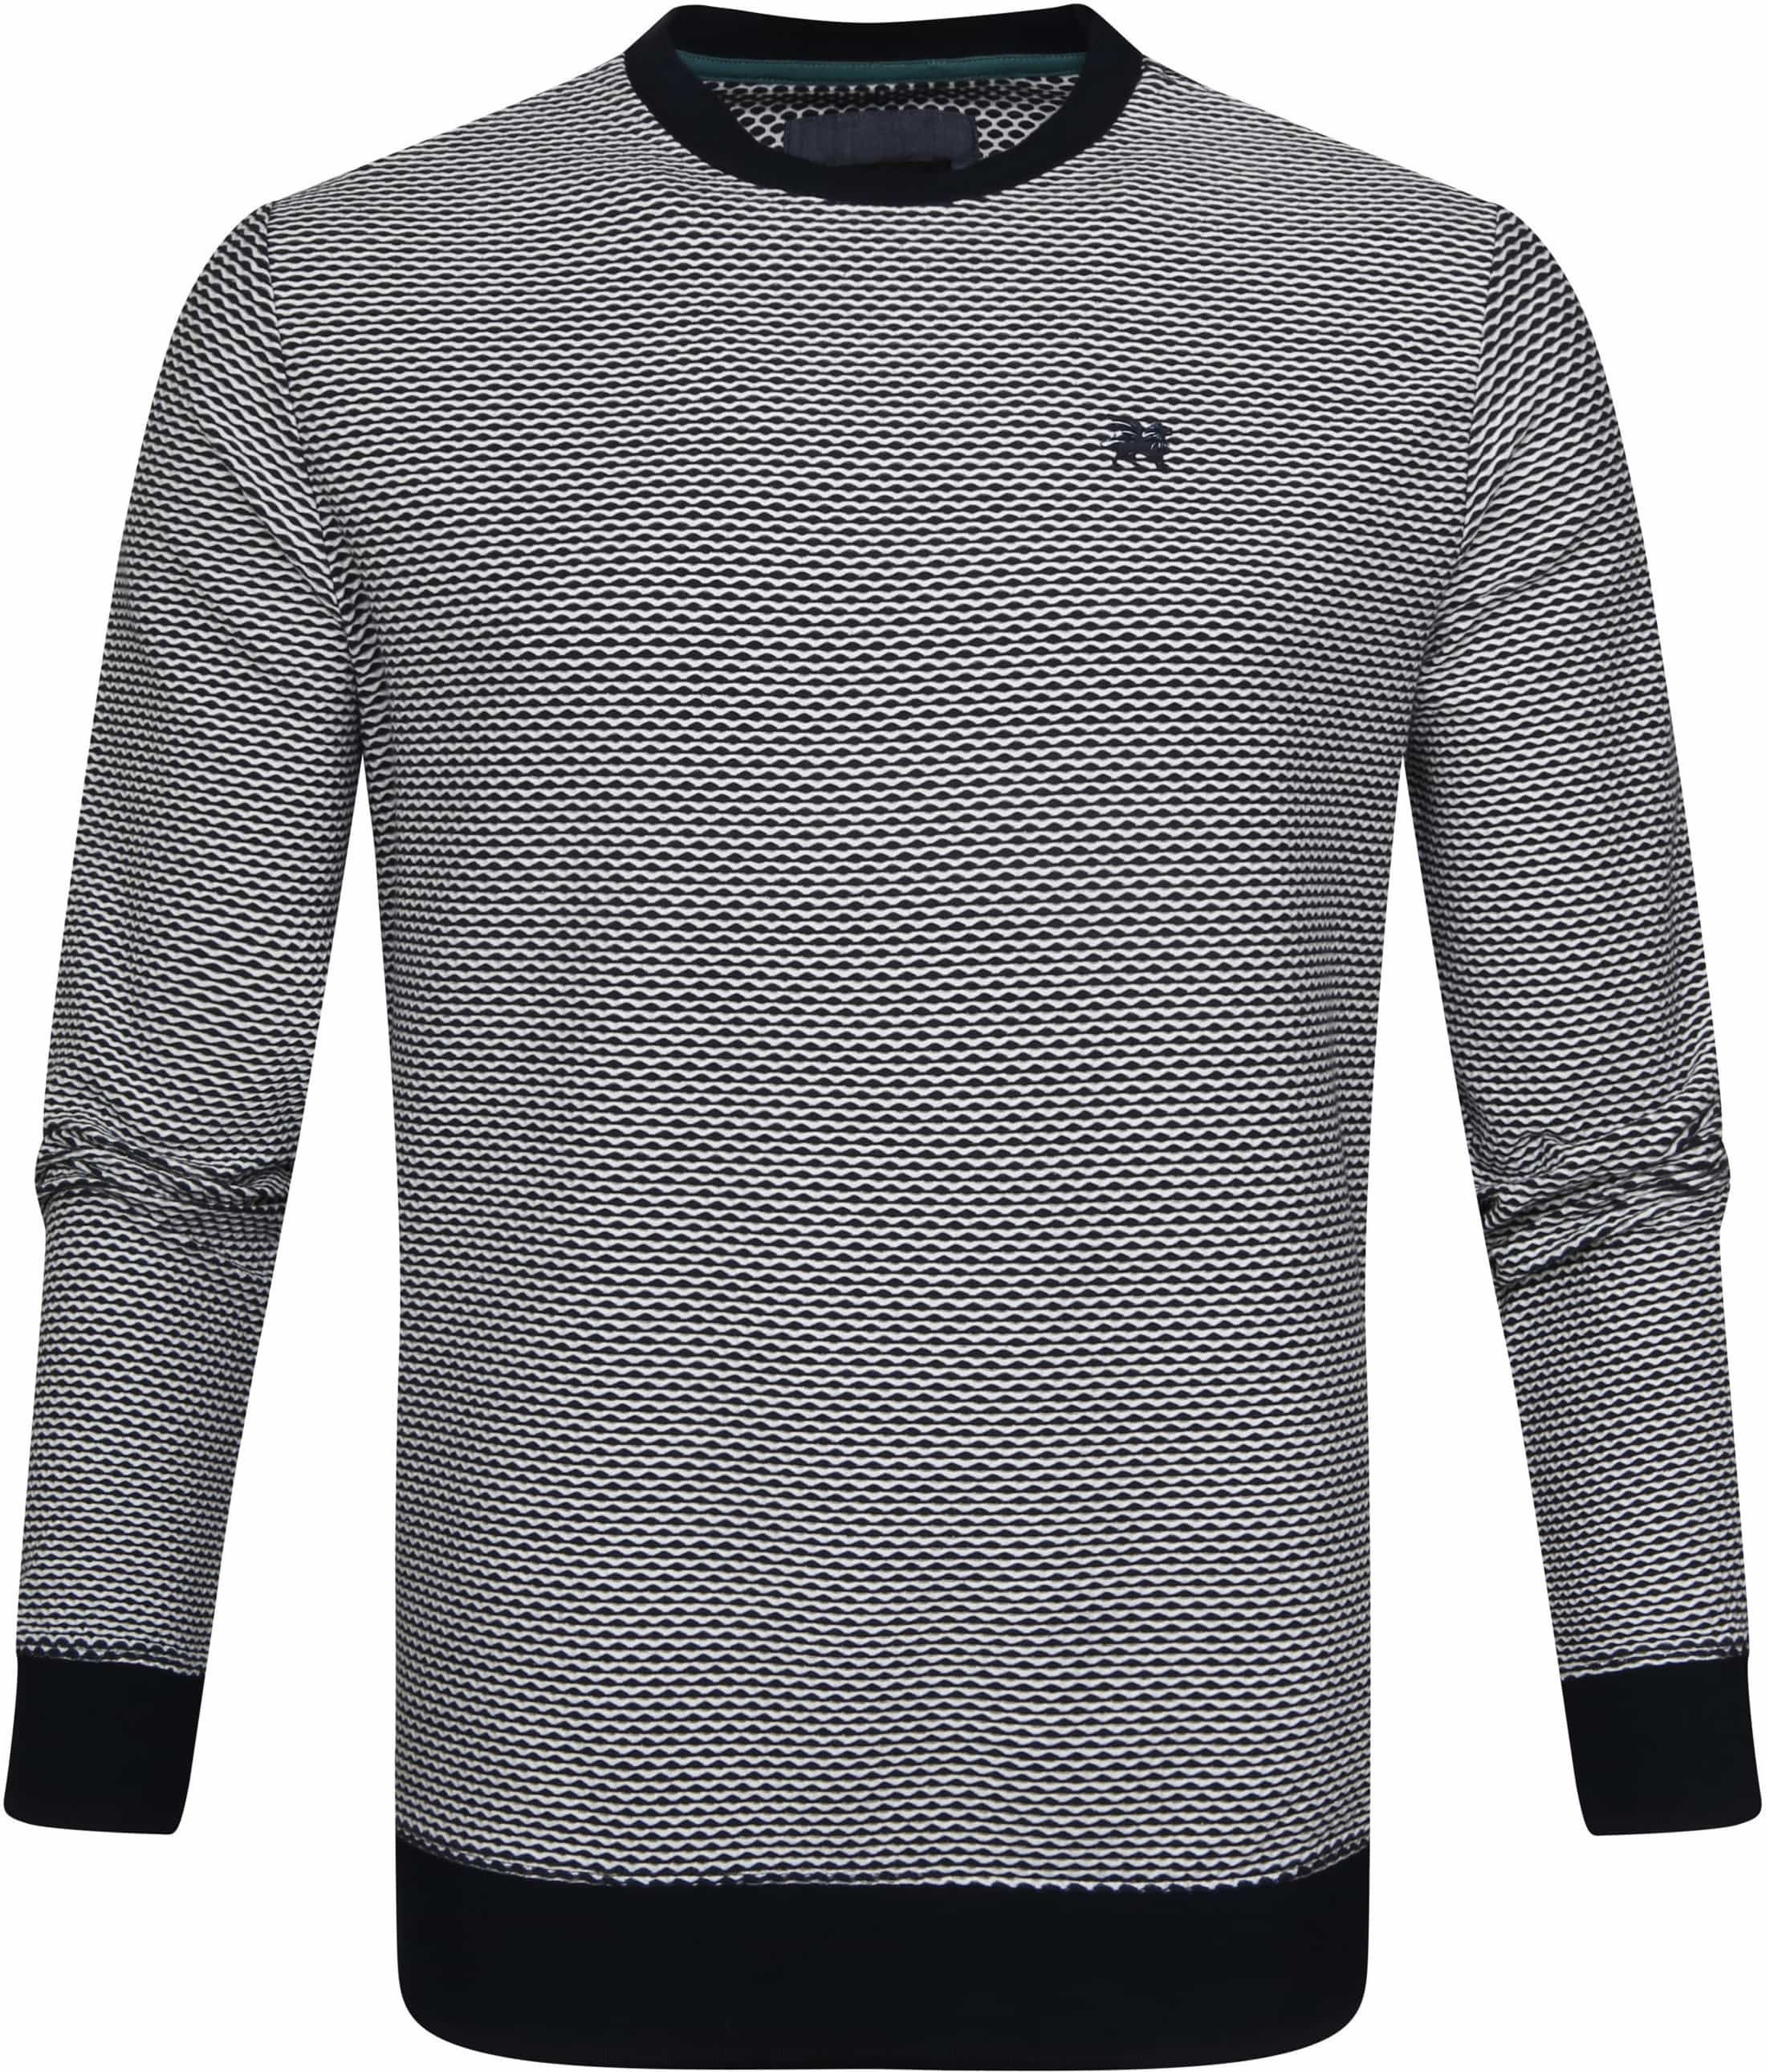 Vanguard Sweater Shadow Structure Donkerblauw foto 0